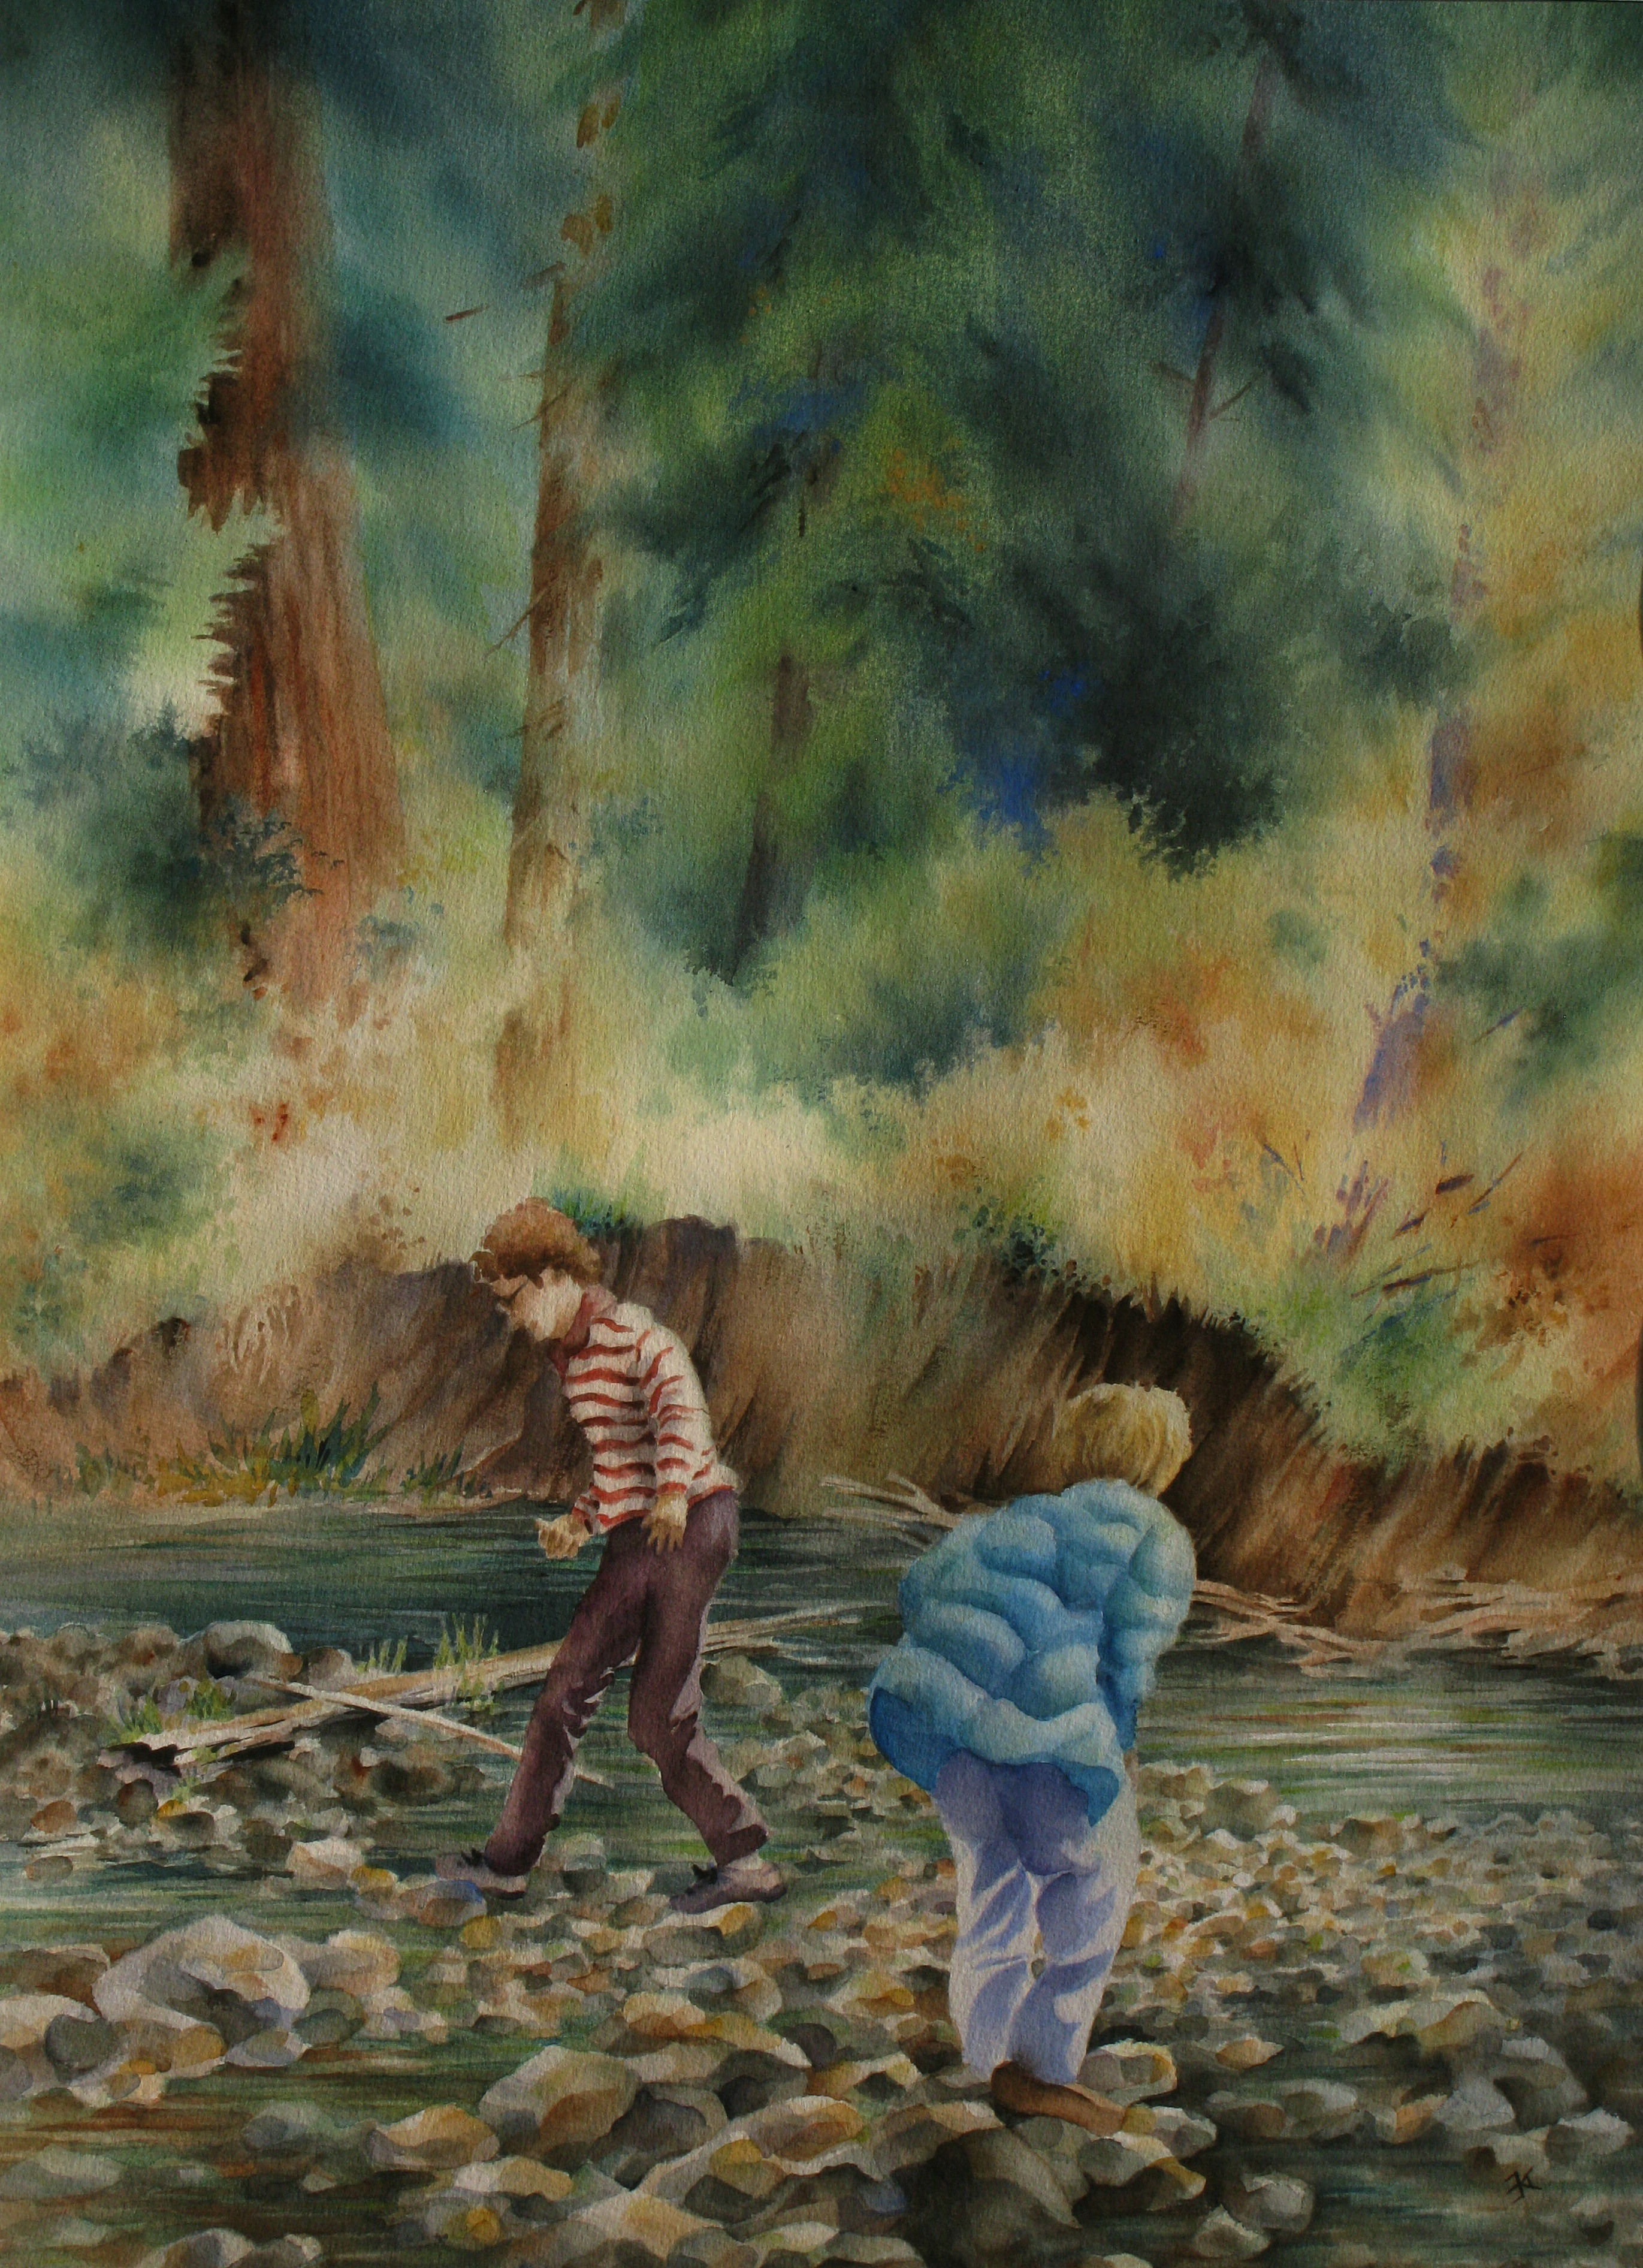 Two guys rock hopping painting